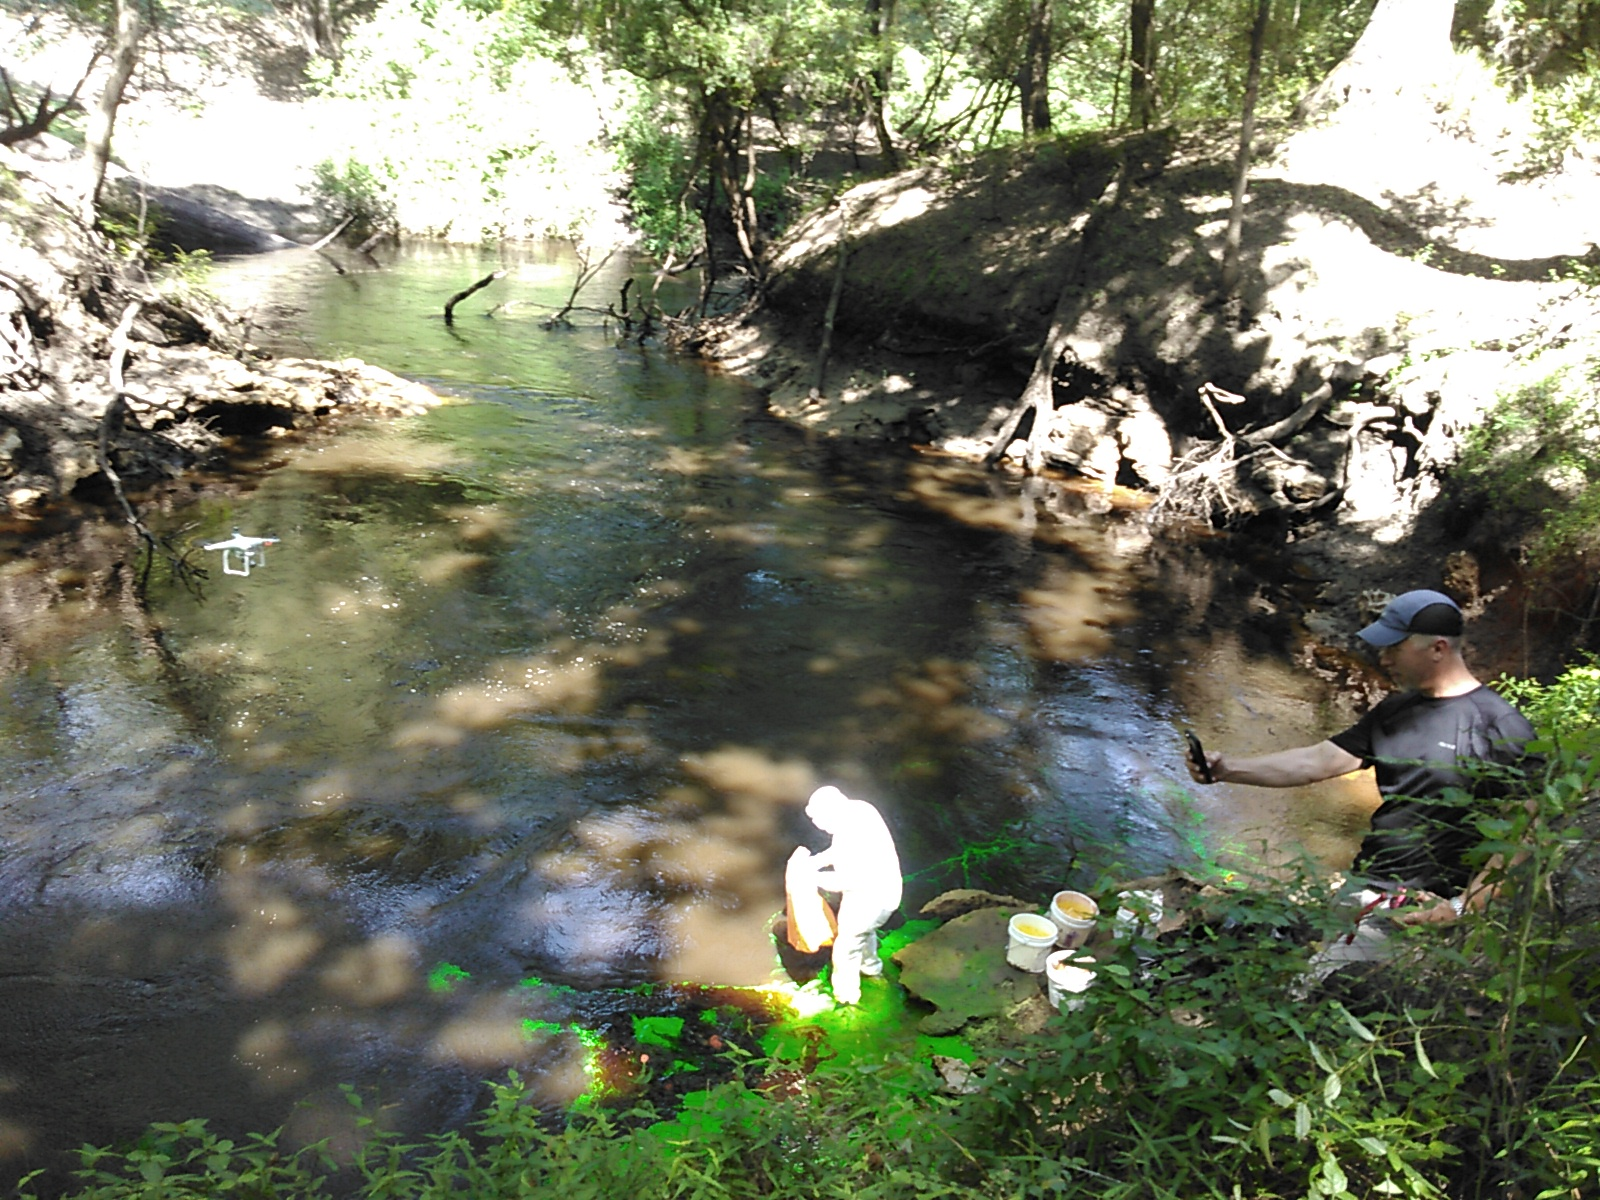 1600x1200 Tom Greenhalgh dying the Dead River, Harley Means, and a drone, in Alapaha Dye Test, by John S. Quarterman, for WWALS.net, 22 June 2016